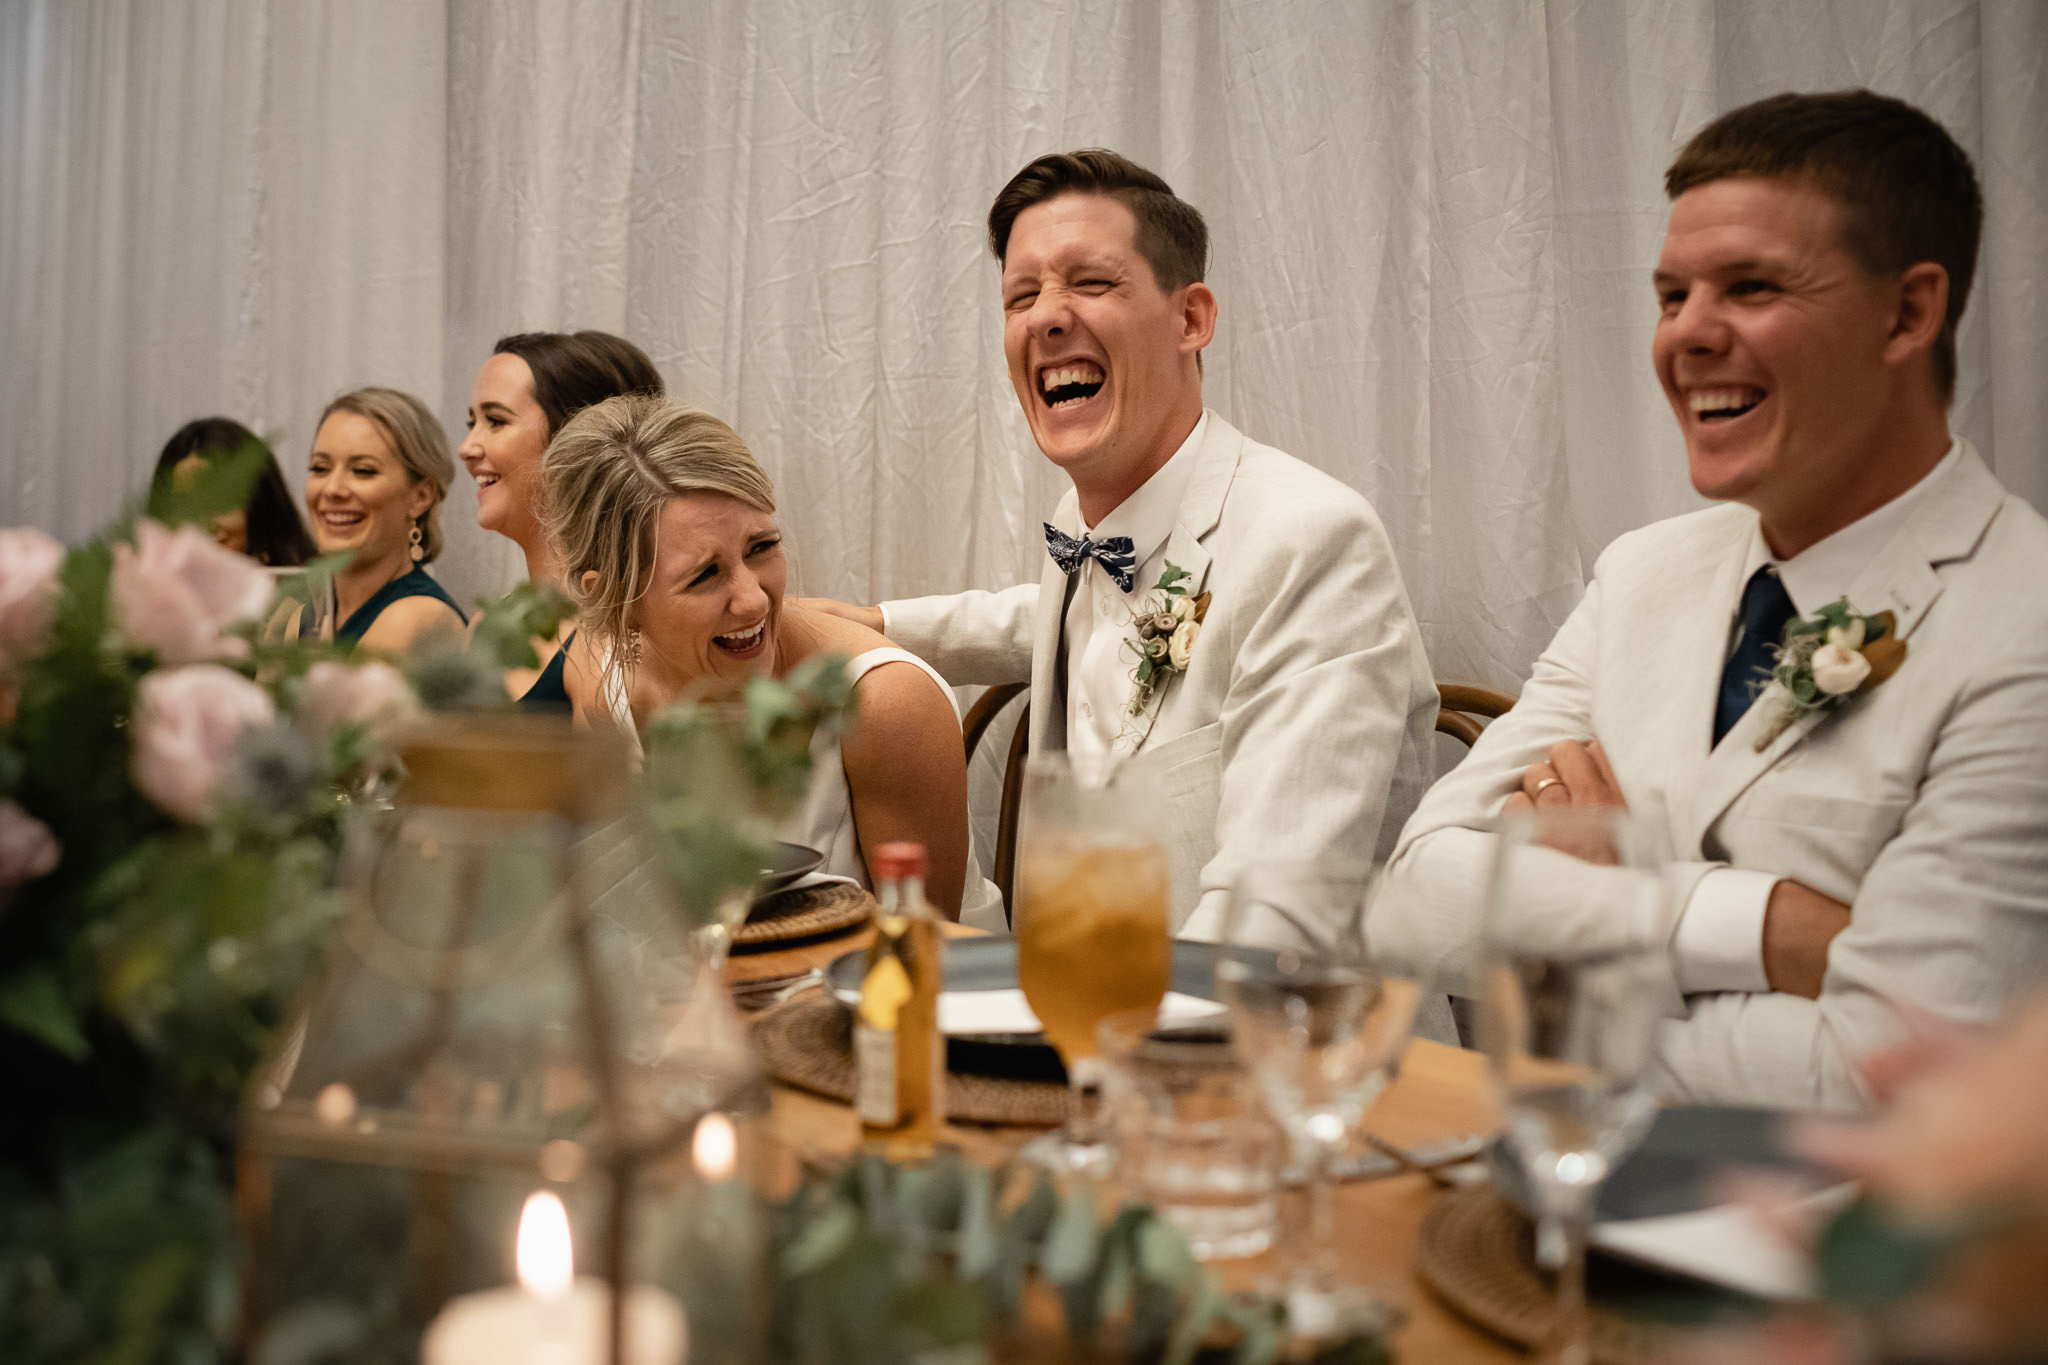 Bride and groom laughing during hilarious wedding speeches